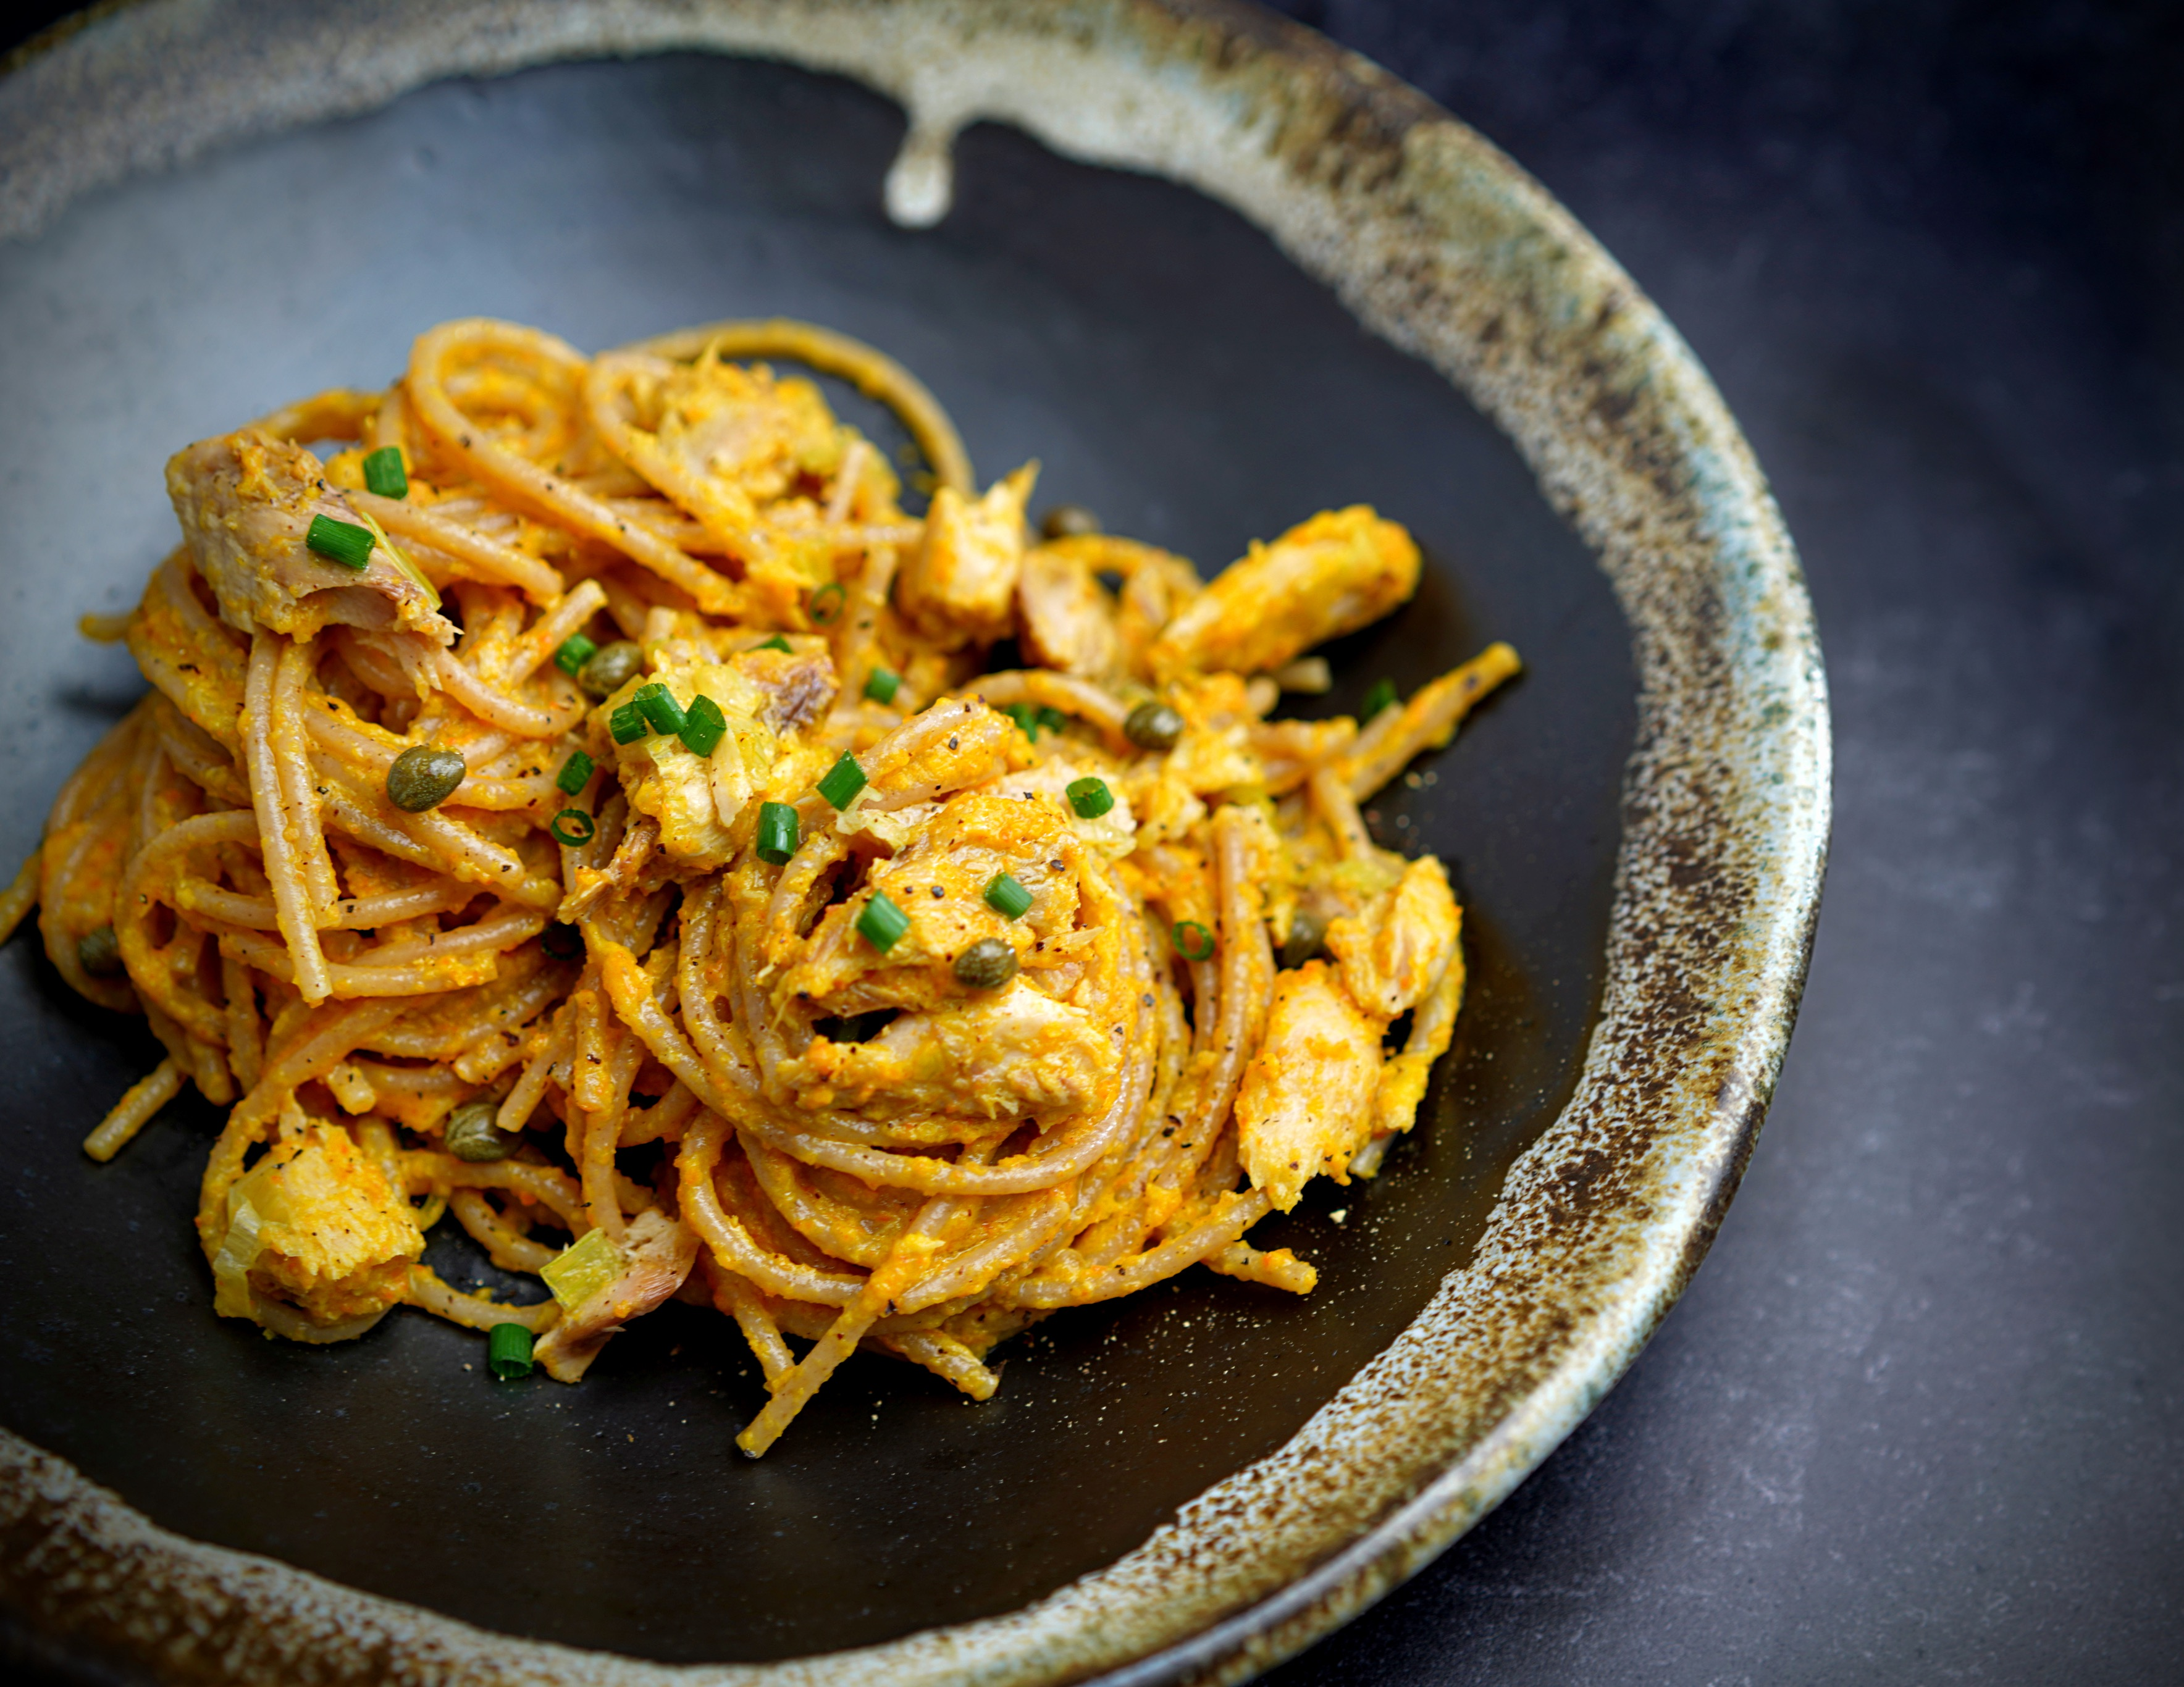 Wholewheat Spaghetti with Carrot Sauce and Mackerel